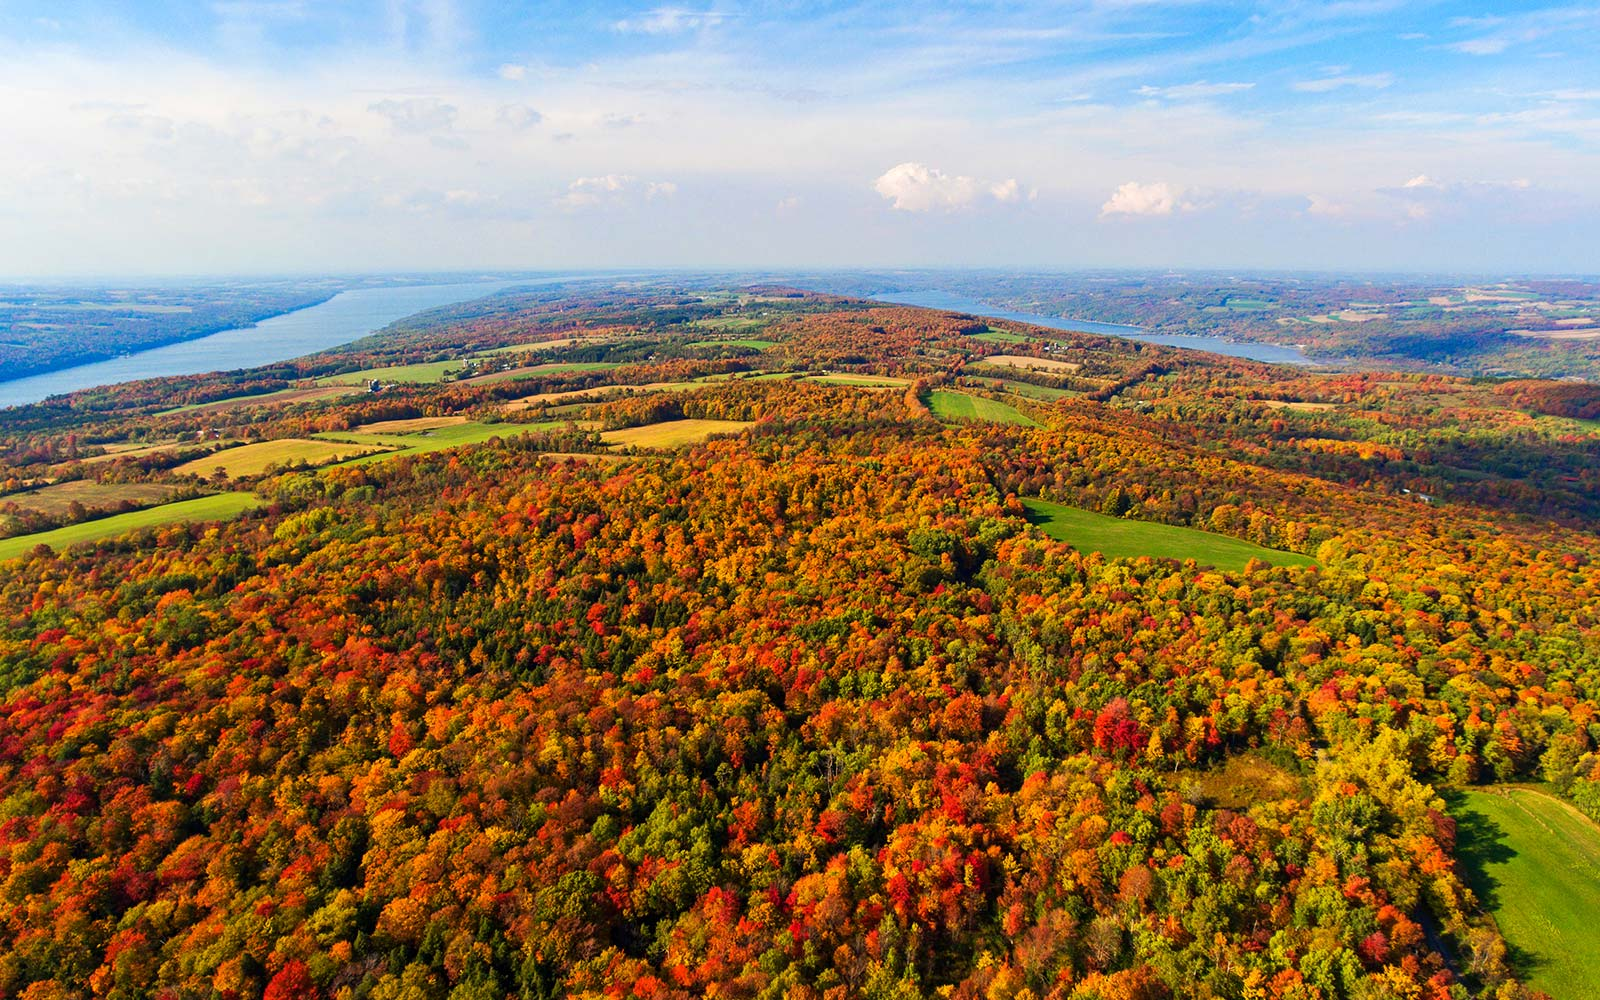 An aerial shot of the Finger Lakes in upstate New York during a beautiful and colorful autumn day in the country foliage